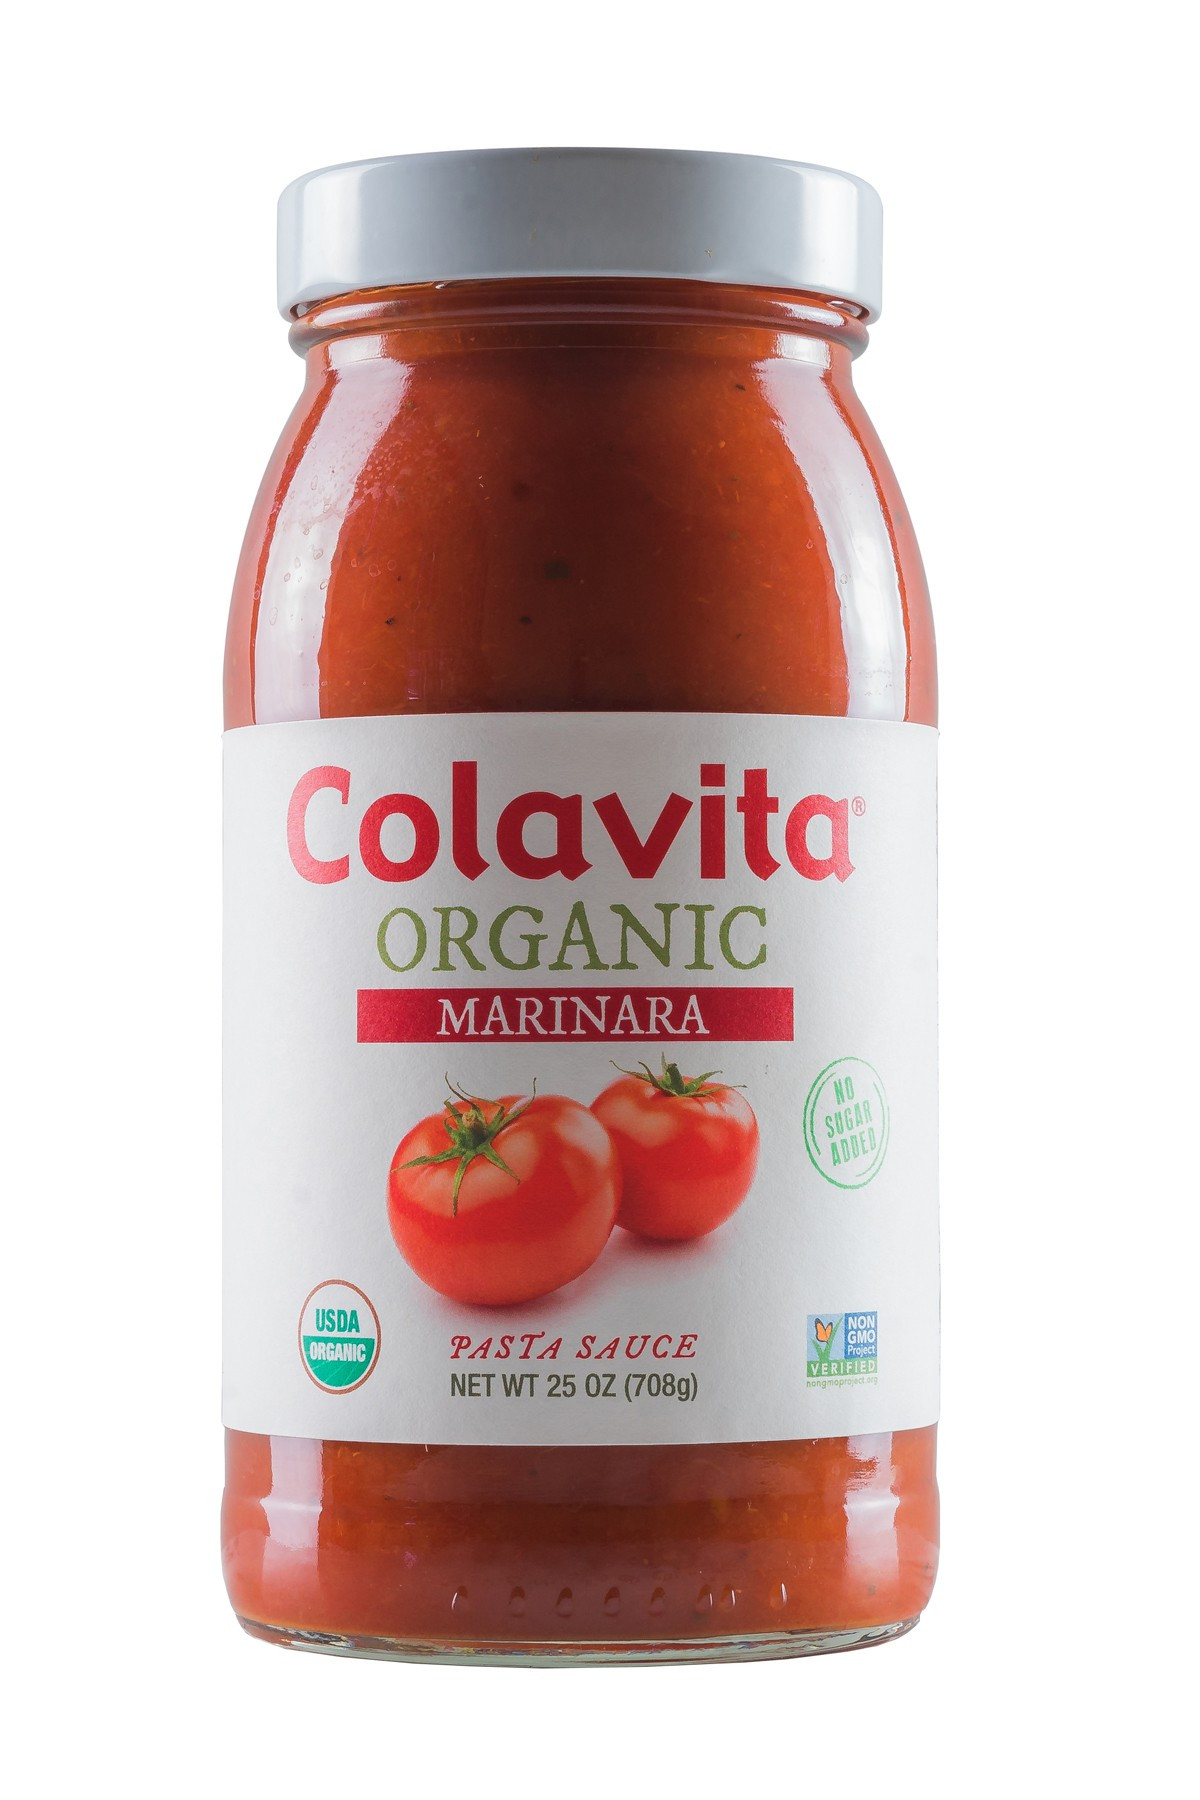 Organic Spaghetti Sauce the 20 Best Ideas for Colavita organic Marinara Sauce 25 Oz Jar